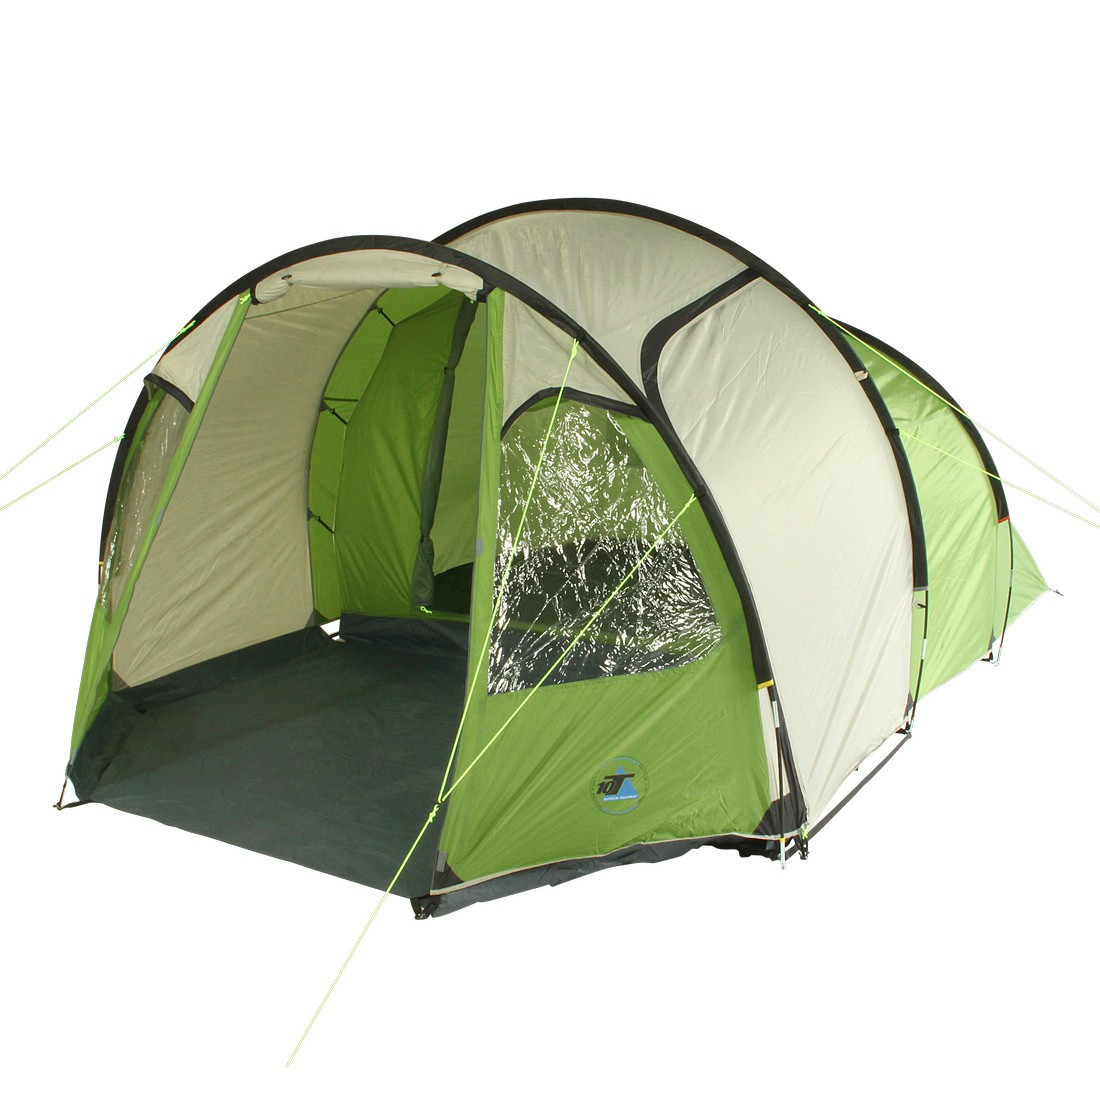 achetez 10t mandiga 4 green tente tunnel pour 4 personnes chapiteau de camping avec grande. Black Bedroom Furniture Sets. Home Design Ideas